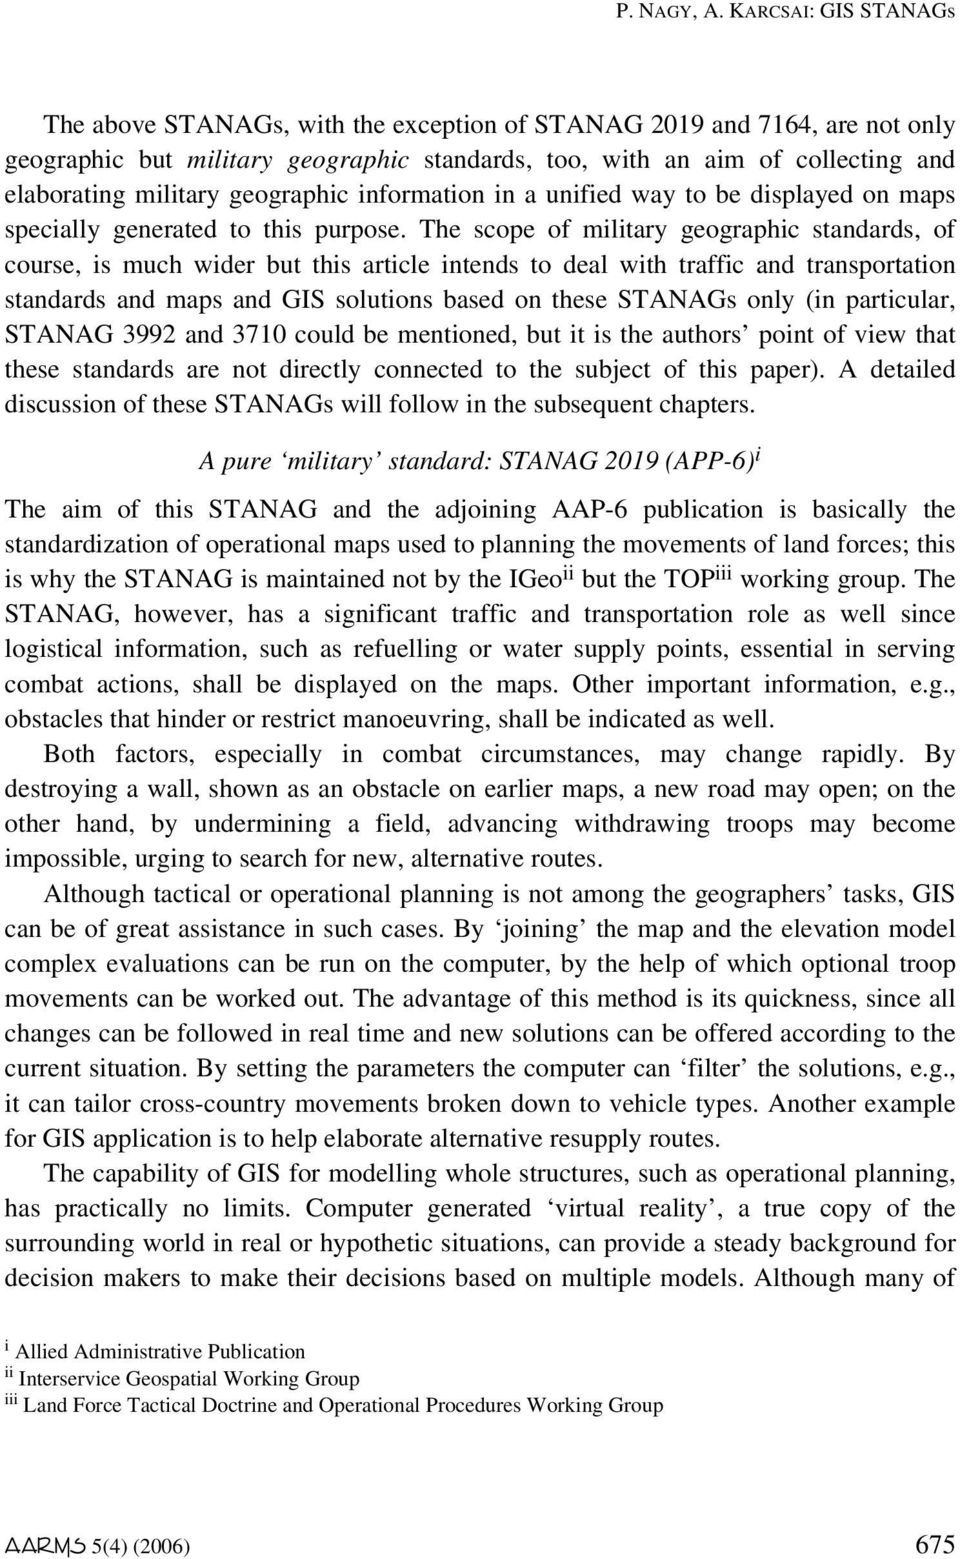 The scope of military geographic standards, of course, is much wider but this article intends to deal with traffic and transportation standards and maps and GIS solutions based on these STANAGs only